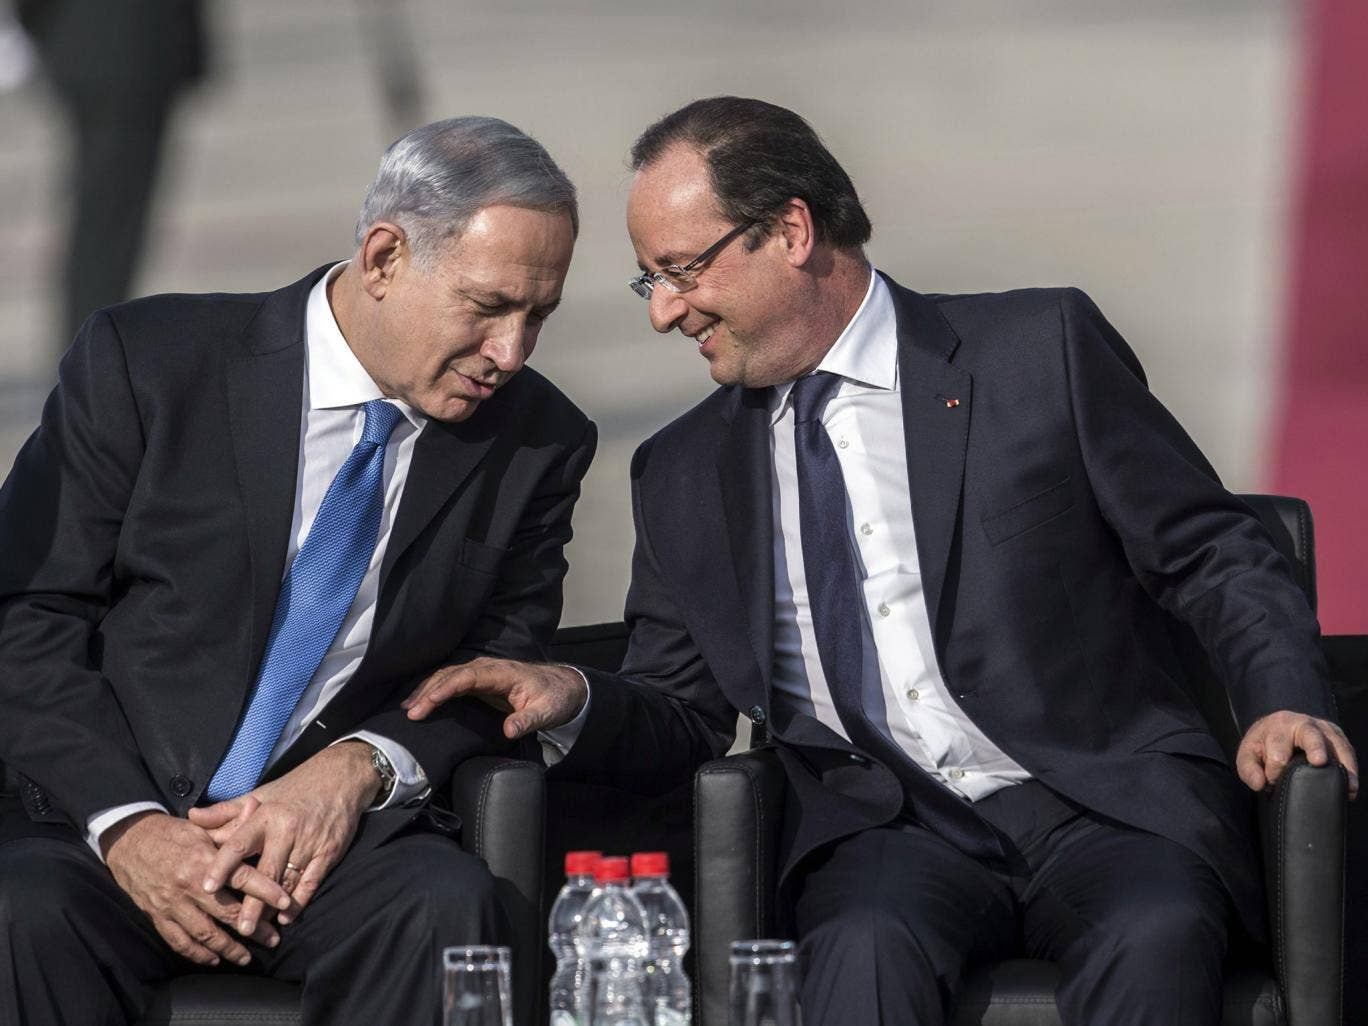 Israel's Prime Minister Benjamin Netanyahu, left, with the French President Francois Hollande, right, said France was a 'true friend' in Tel Aviv